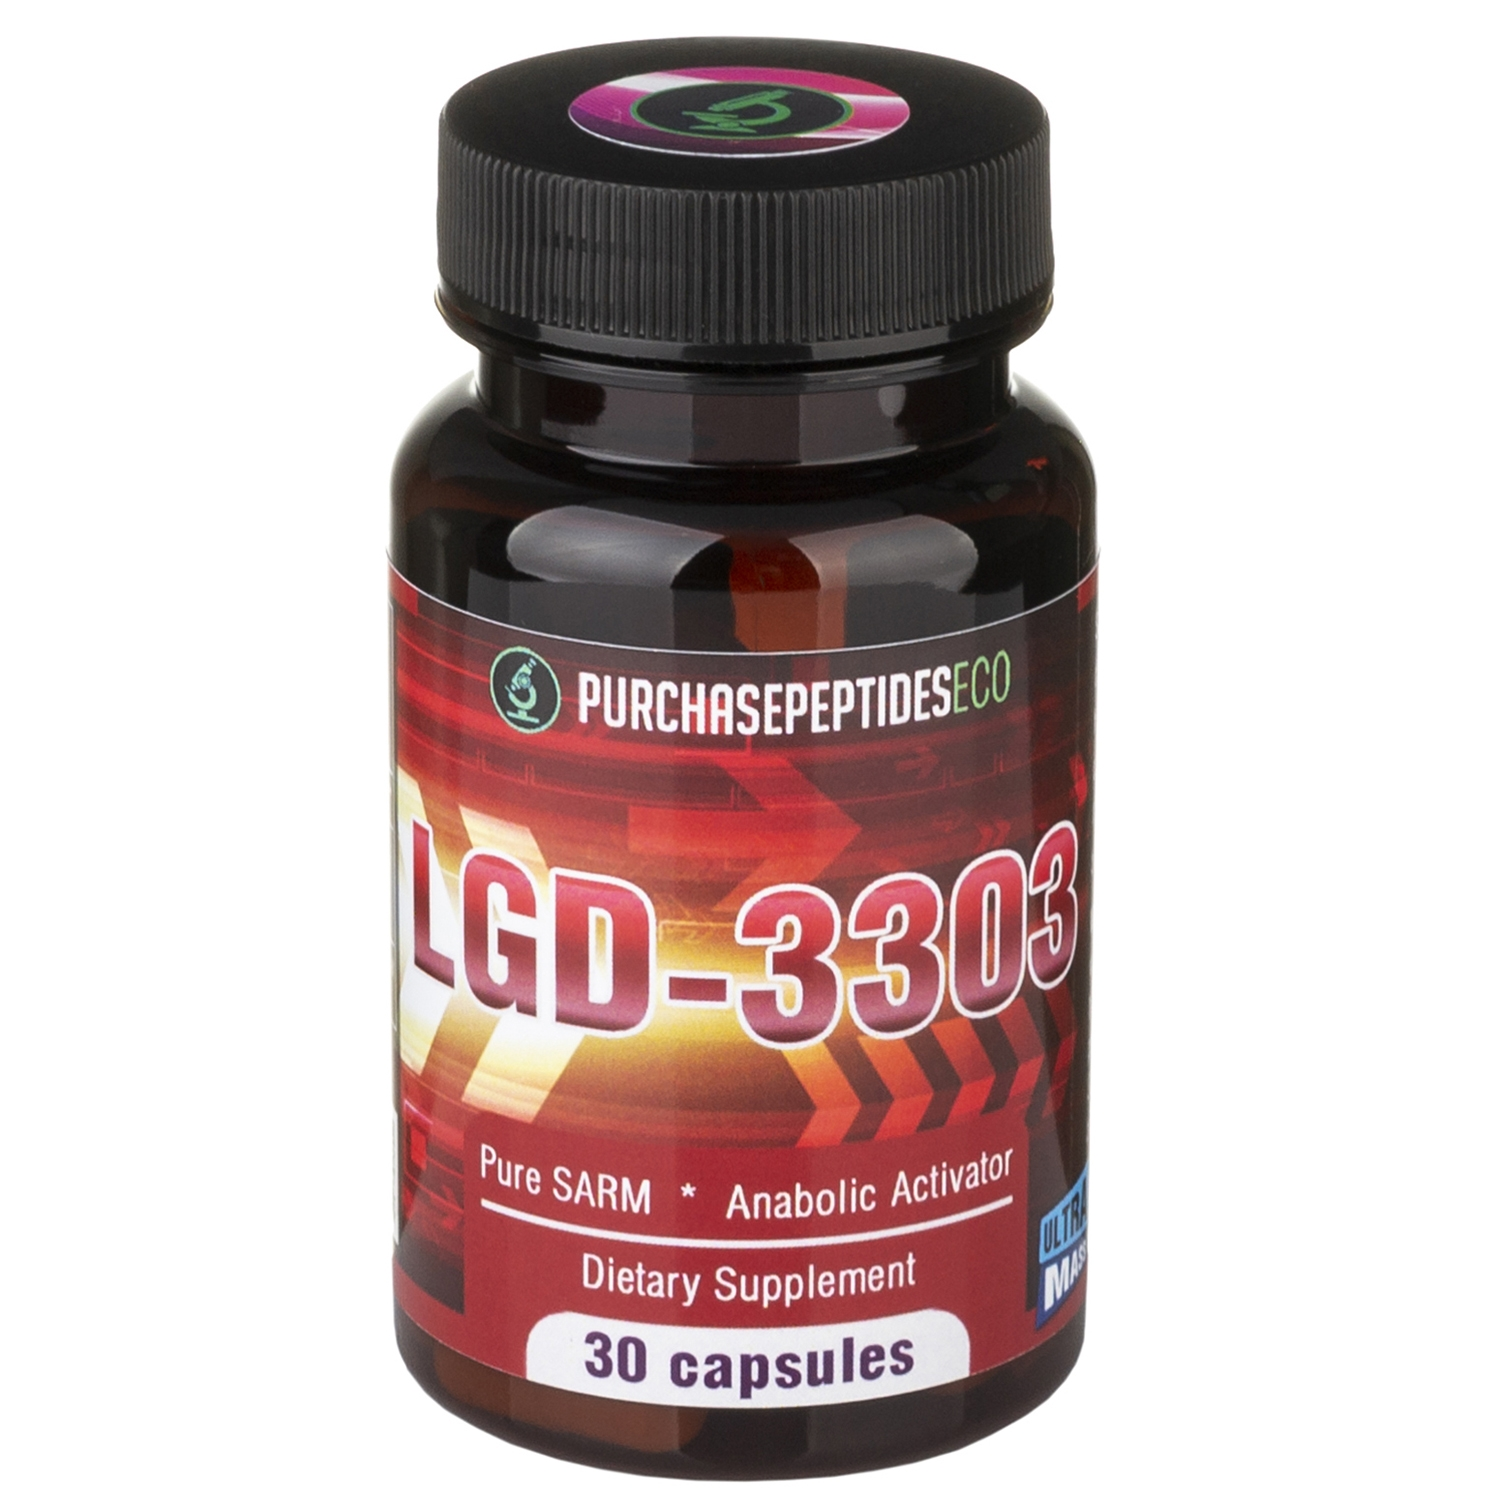 LGD-3303 (PurchasepeptidesEco) 30 капс.